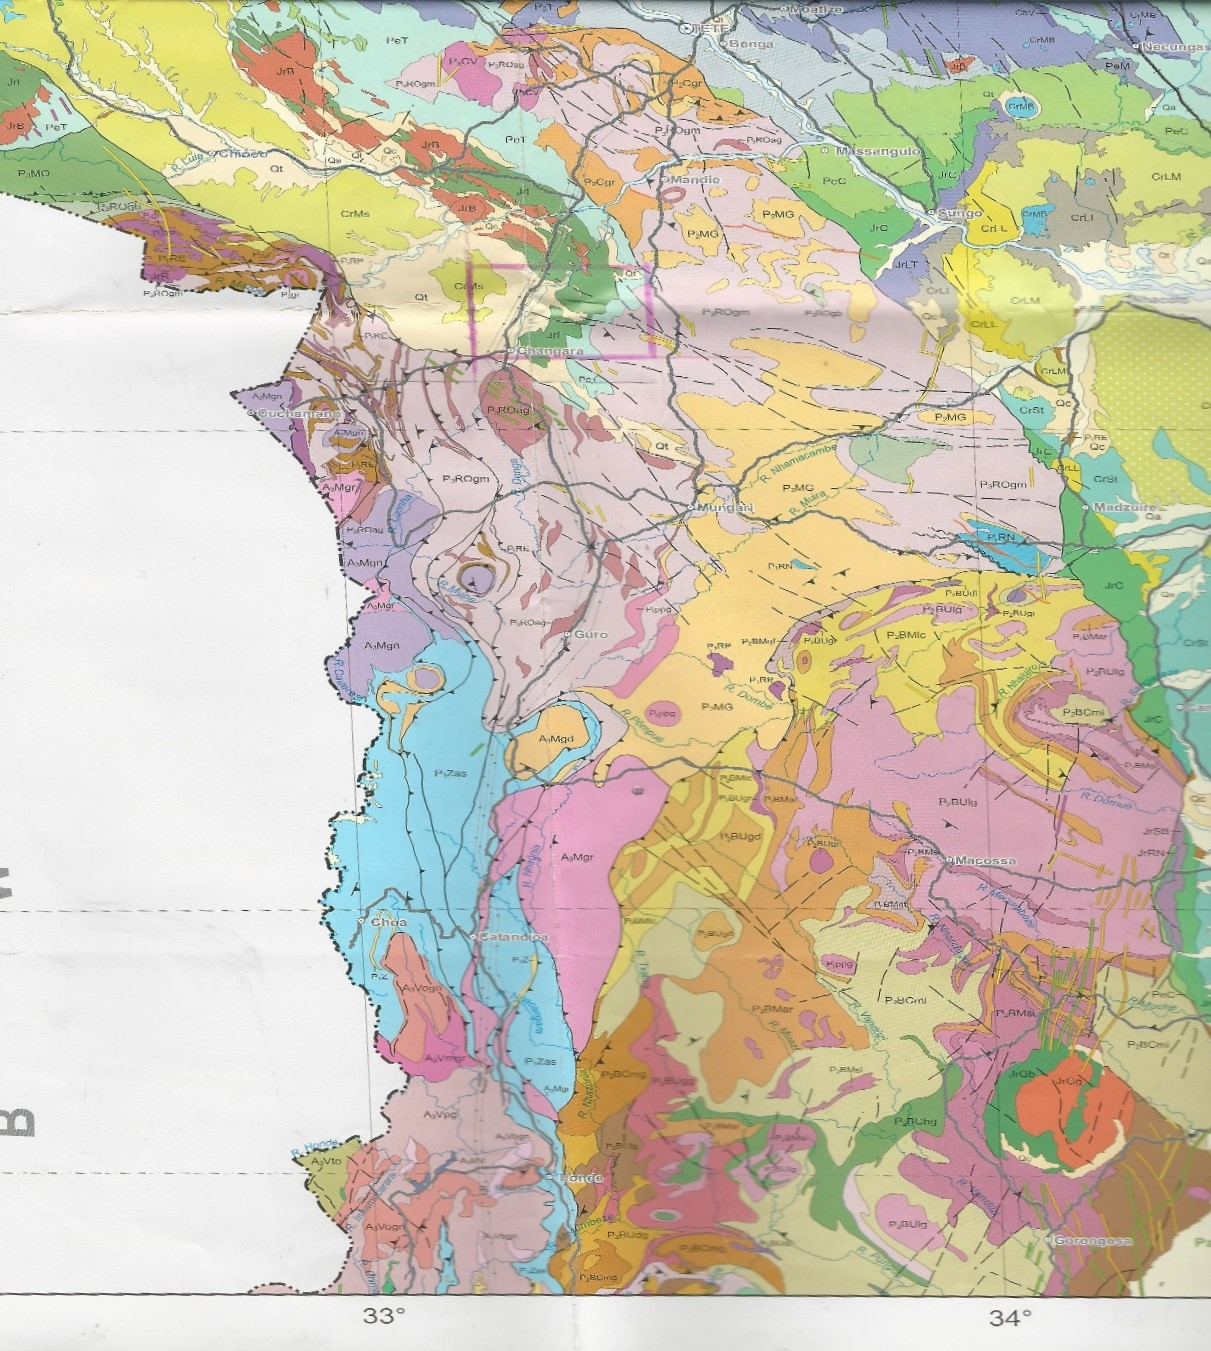 Fig.4 1,000,000 Geological map of the area which is approximately just south of the block in pink. The legend Pg2pmor on the map is indicating granitic and granitic gneisses.